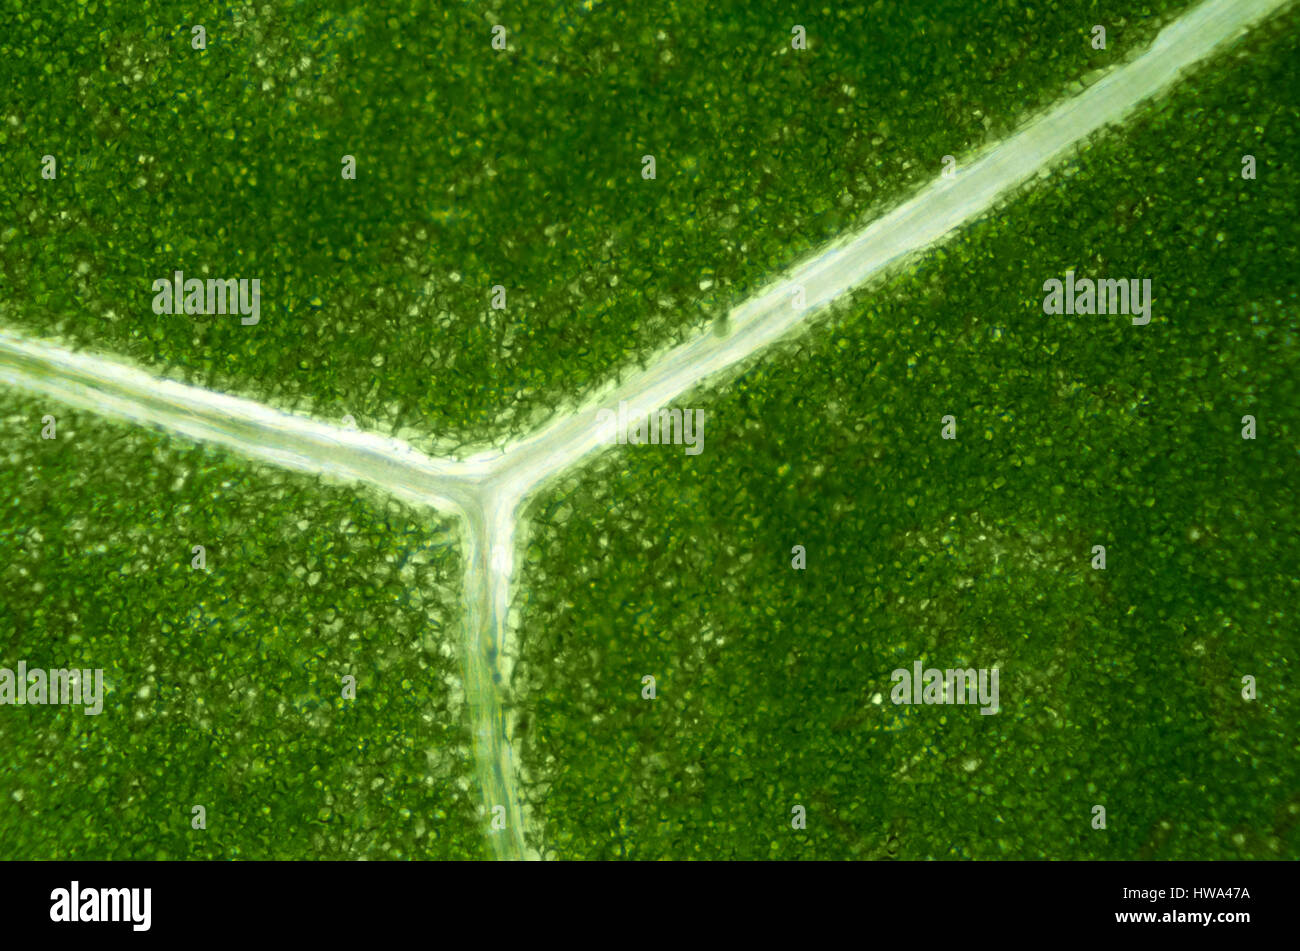 Lettuce leaf under light microscope. Detail of a Batavia leaf with green chloroplasts and translucent branching - Stock Image